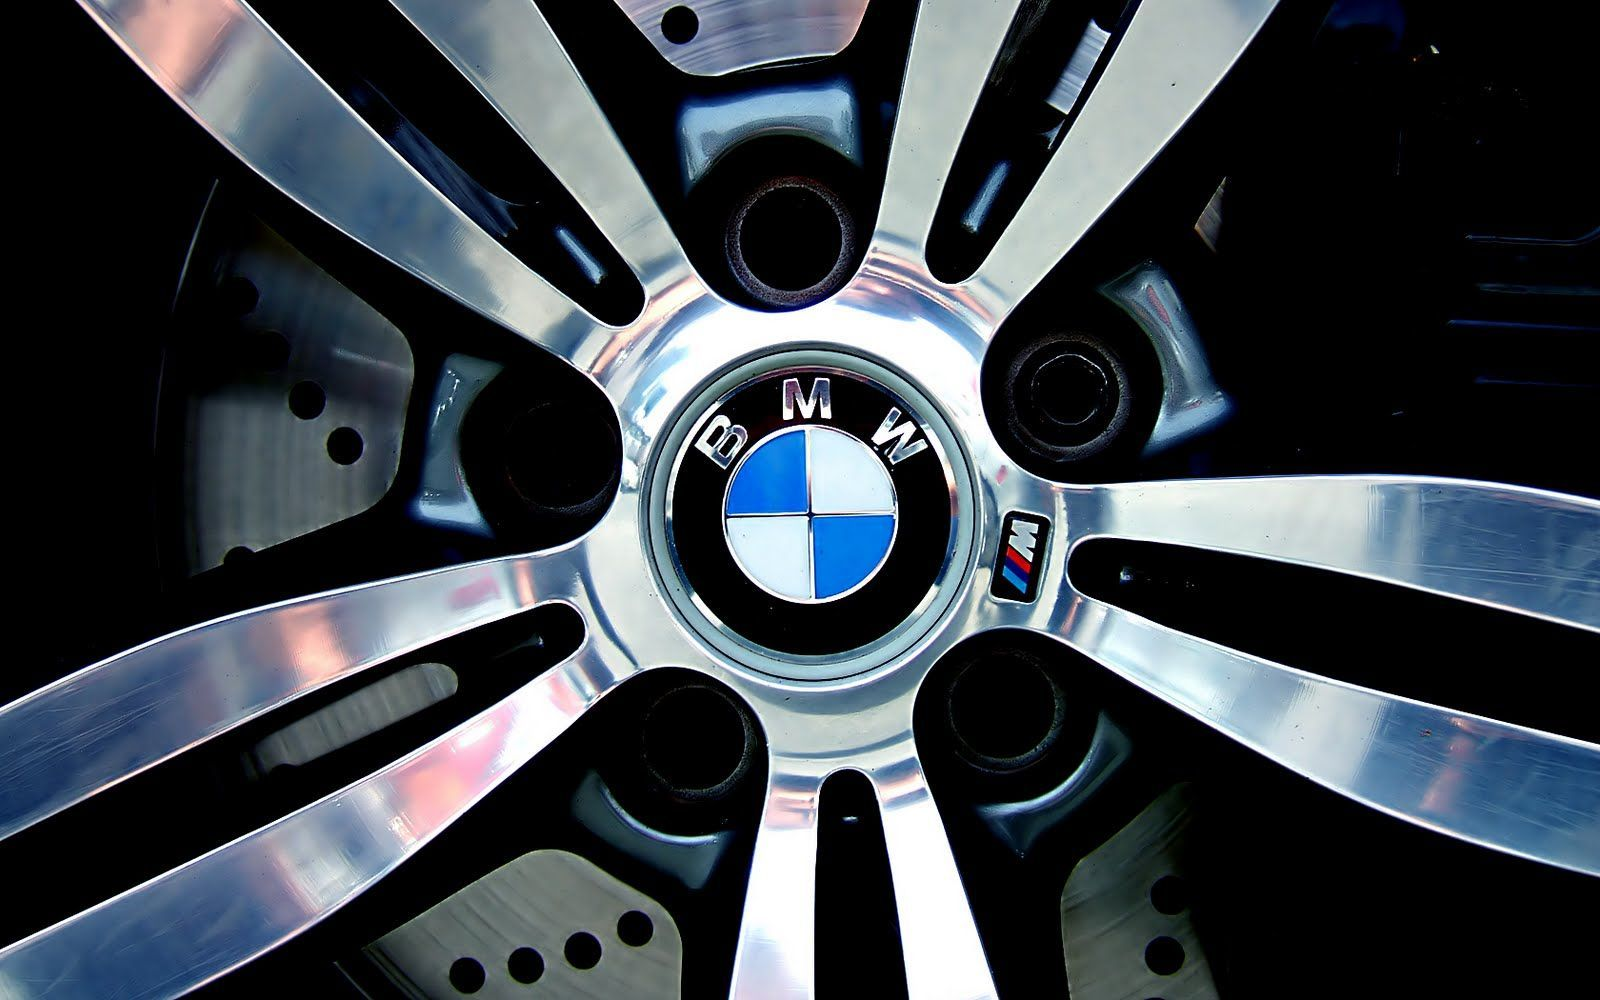 bmw car rim logo wallpaper 58881